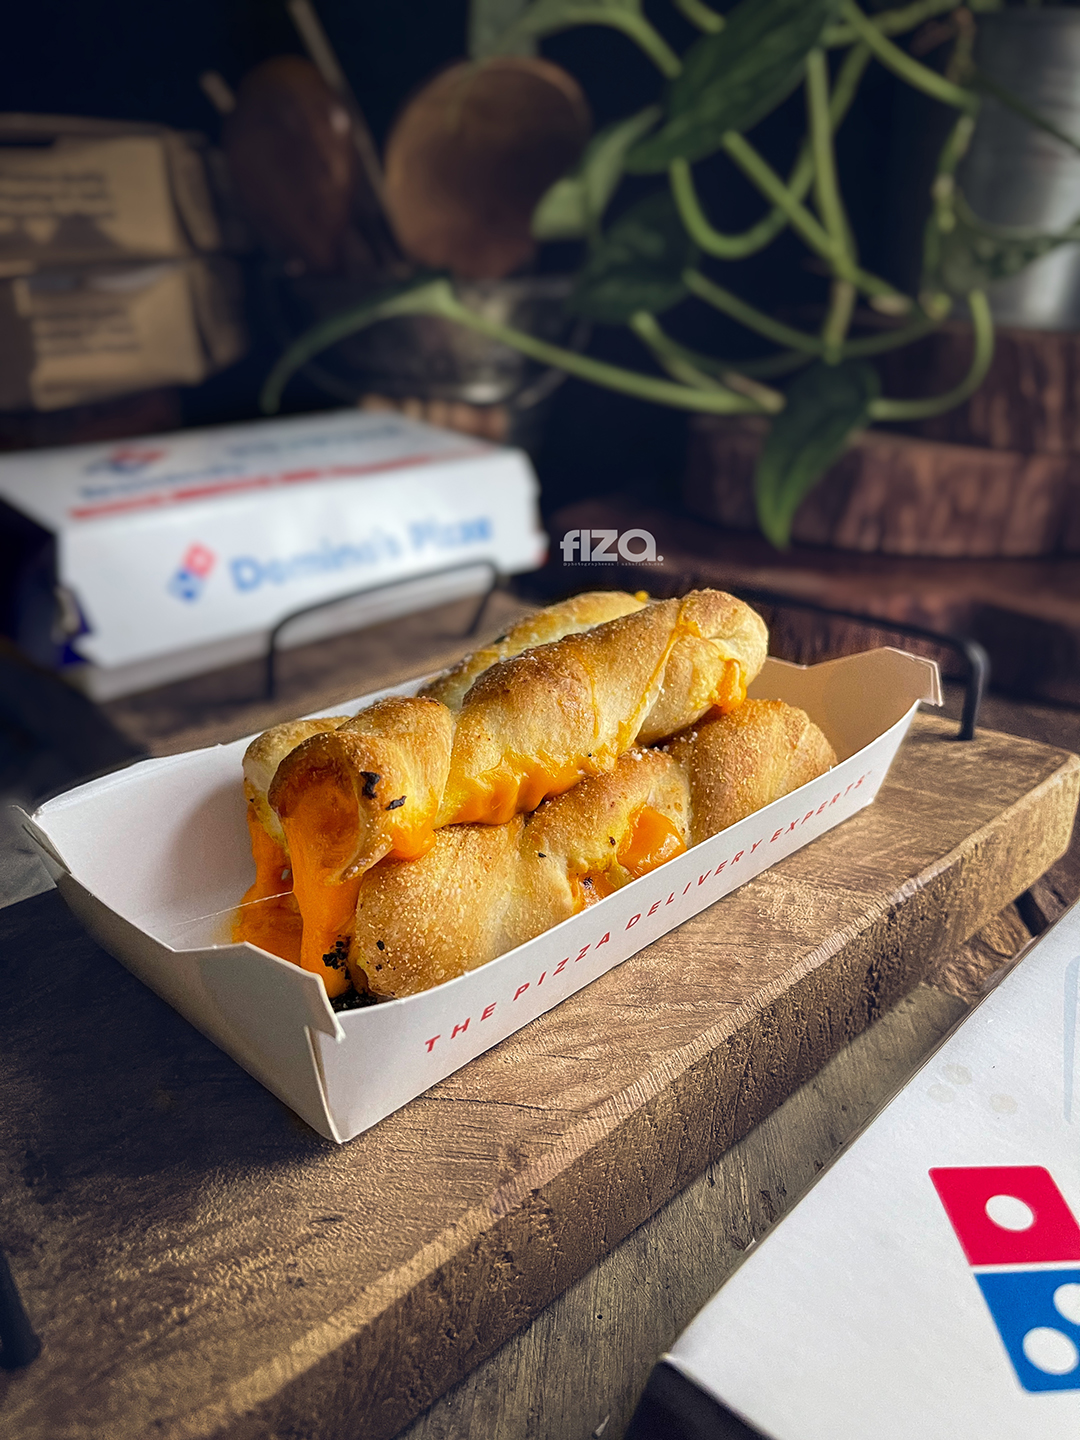 Cheesy Mozzarella Stix Dominos